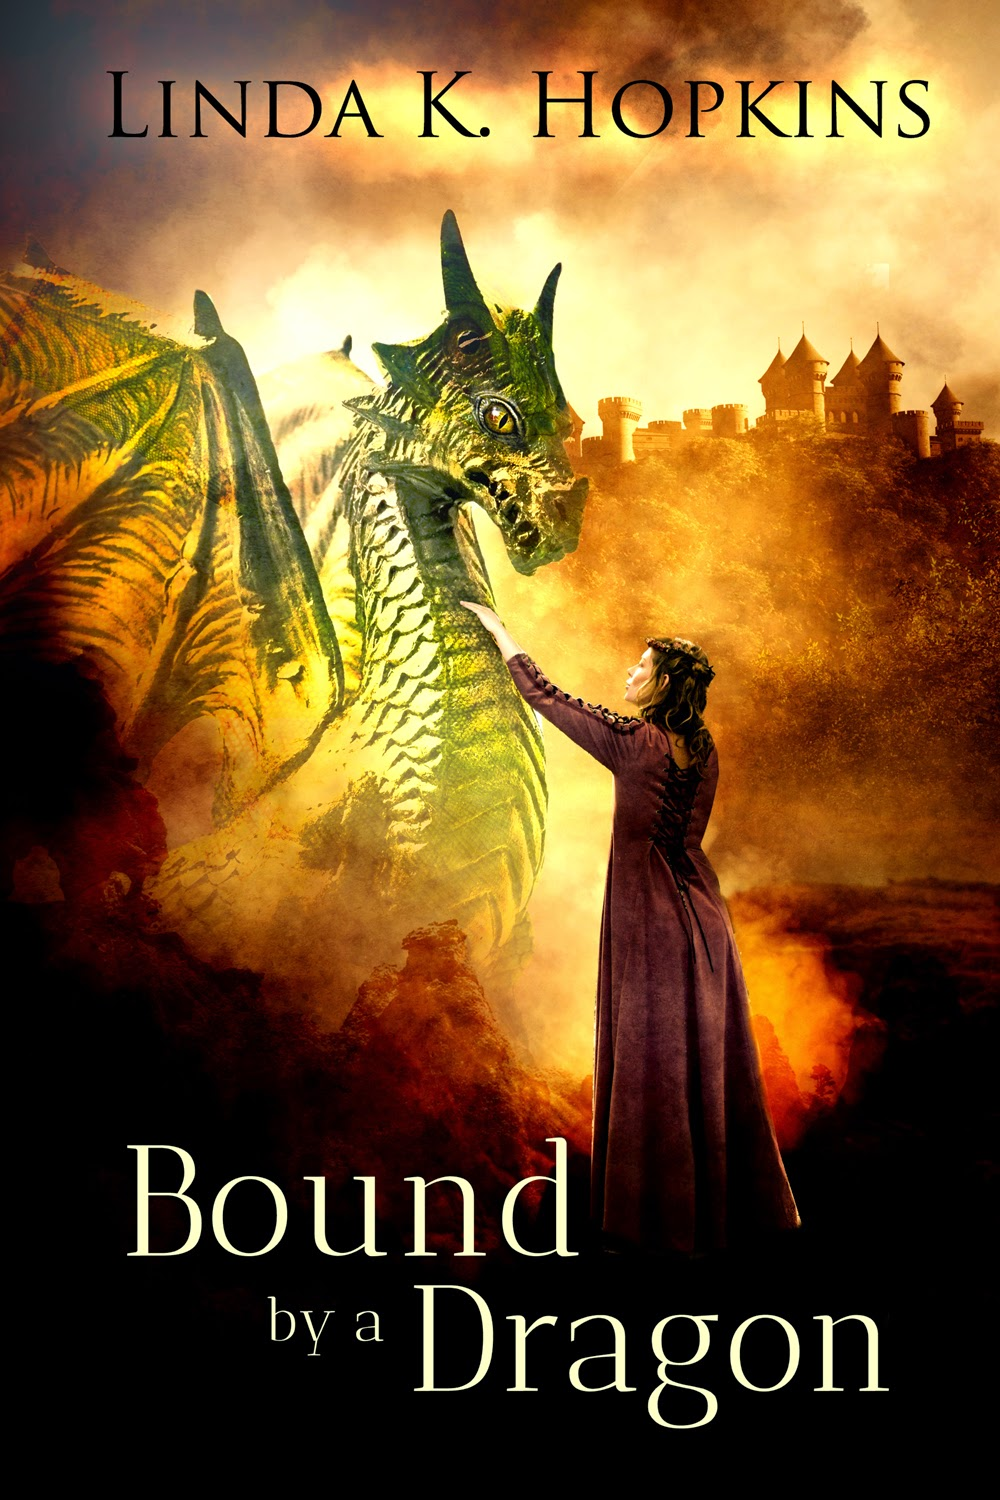 https://www.goodreads.com/book/show/22045083-bound-by-a-dragon